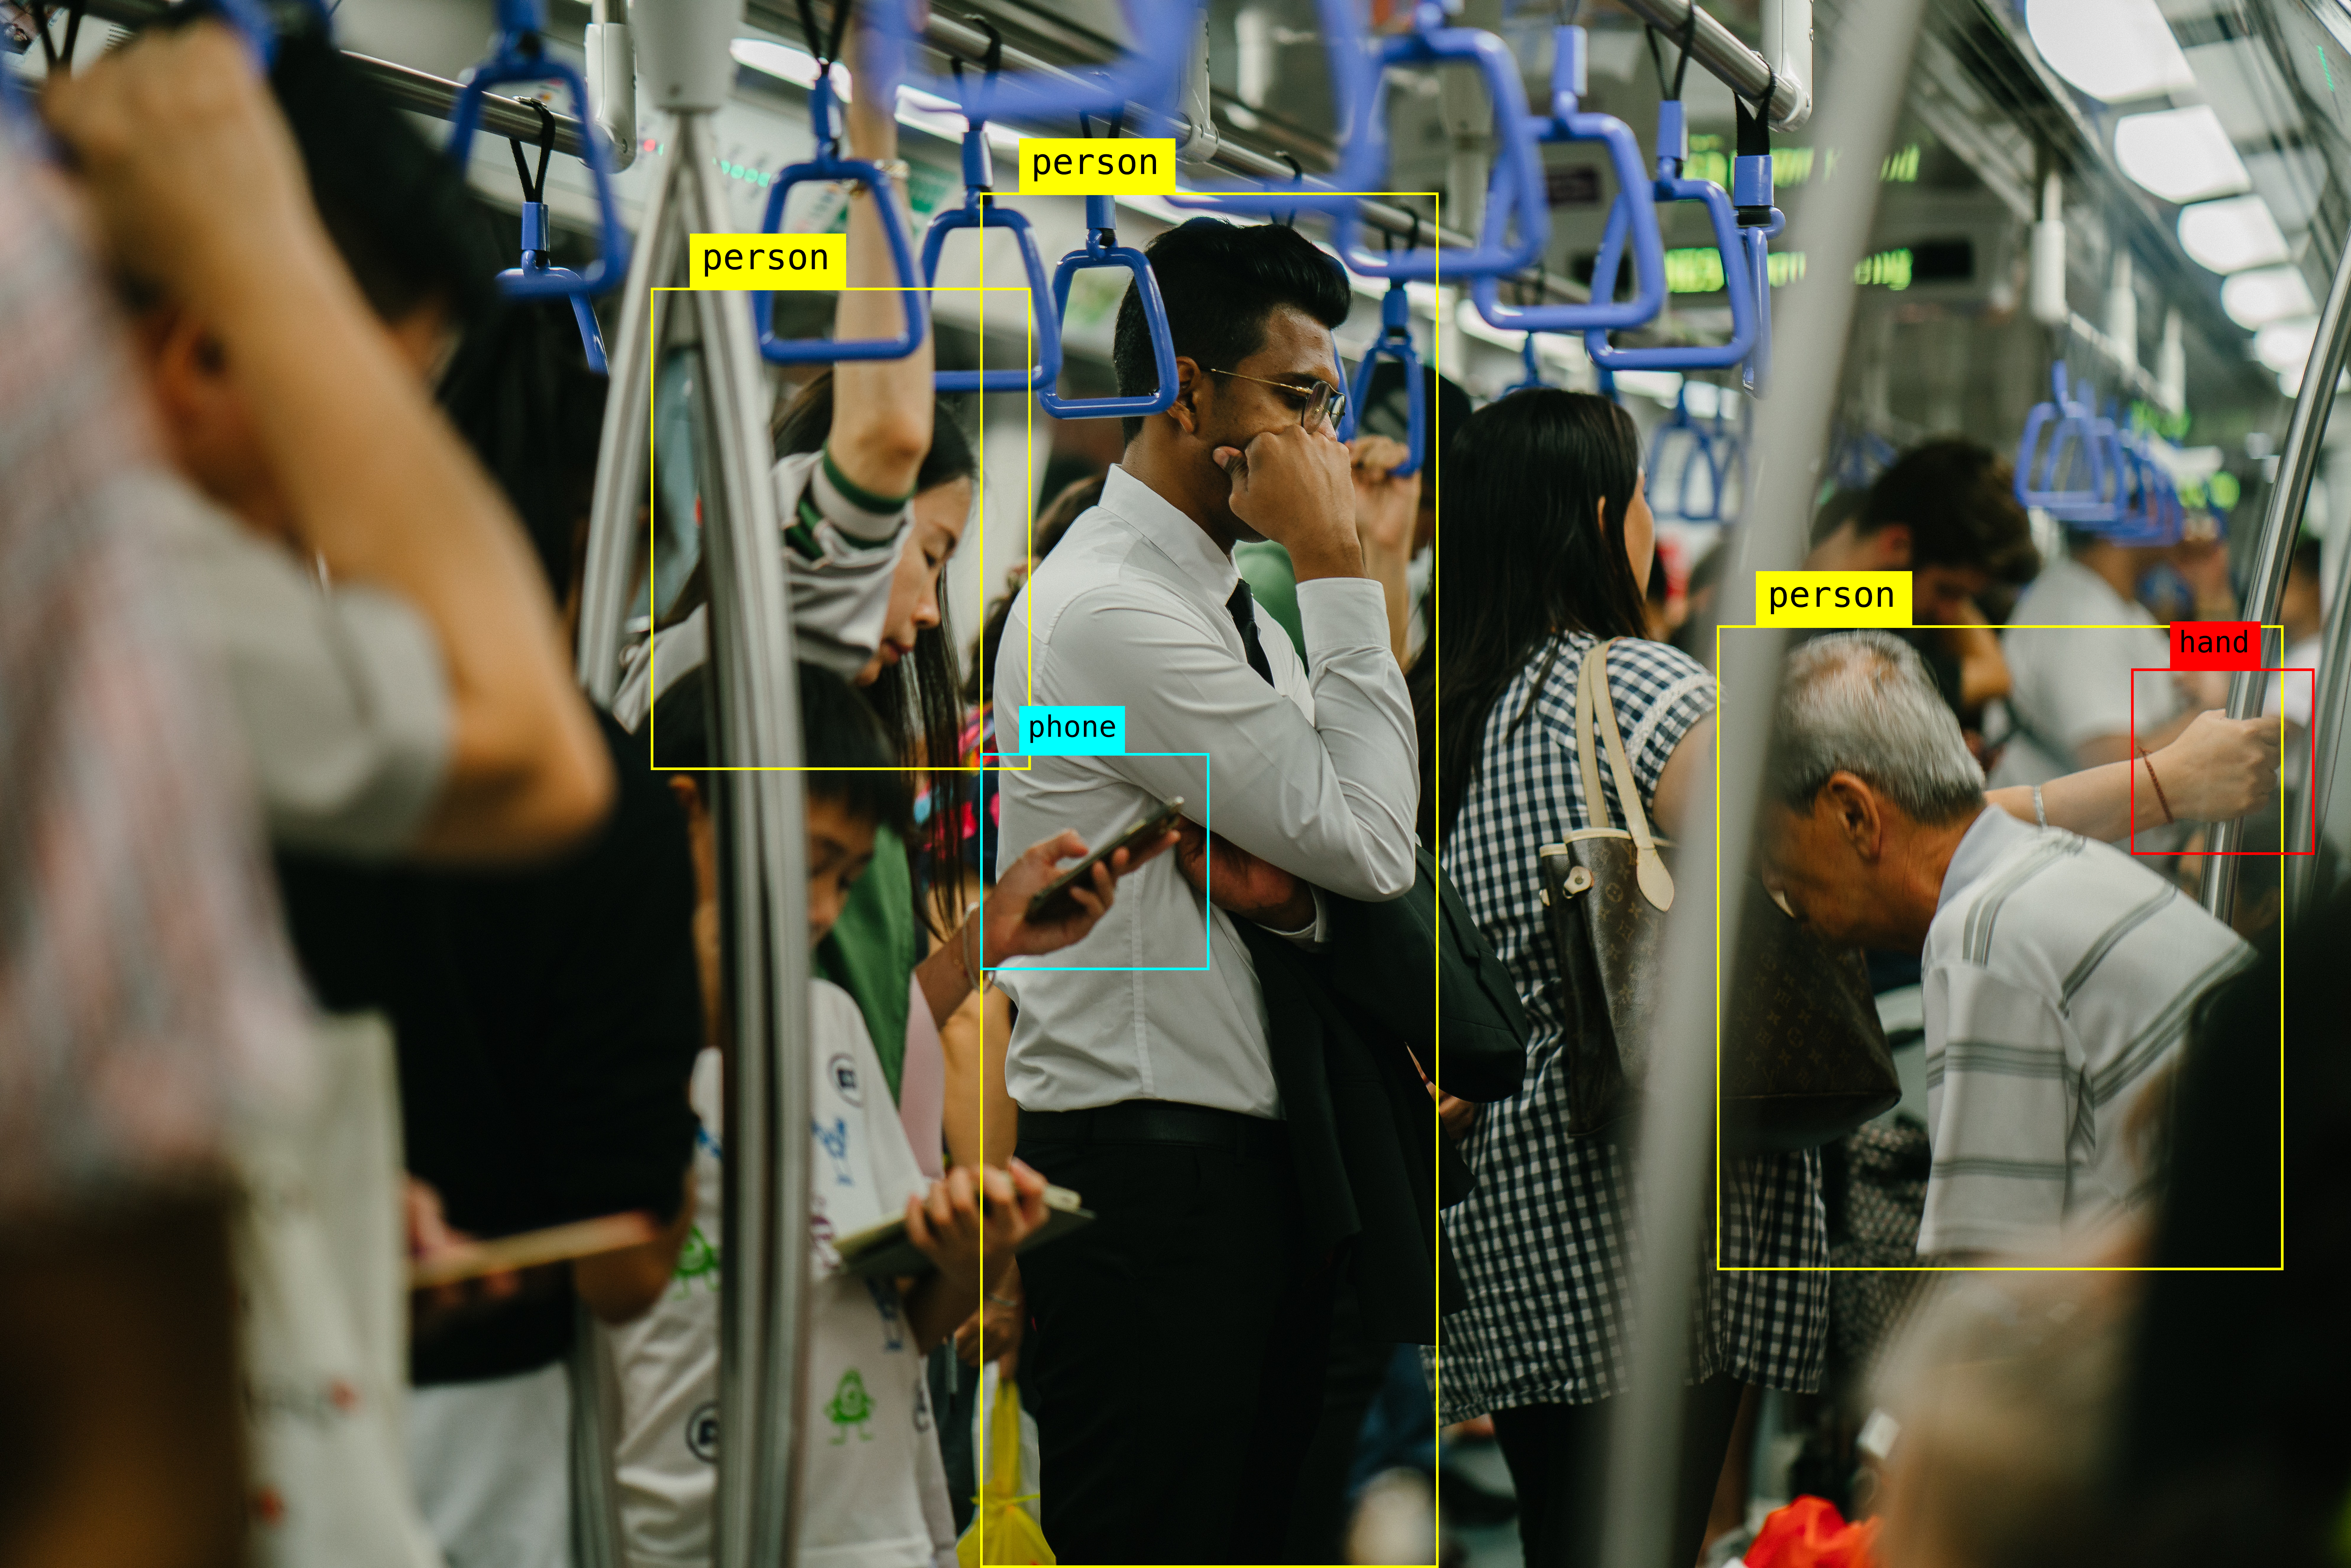 AI object detection in a train using computer vision